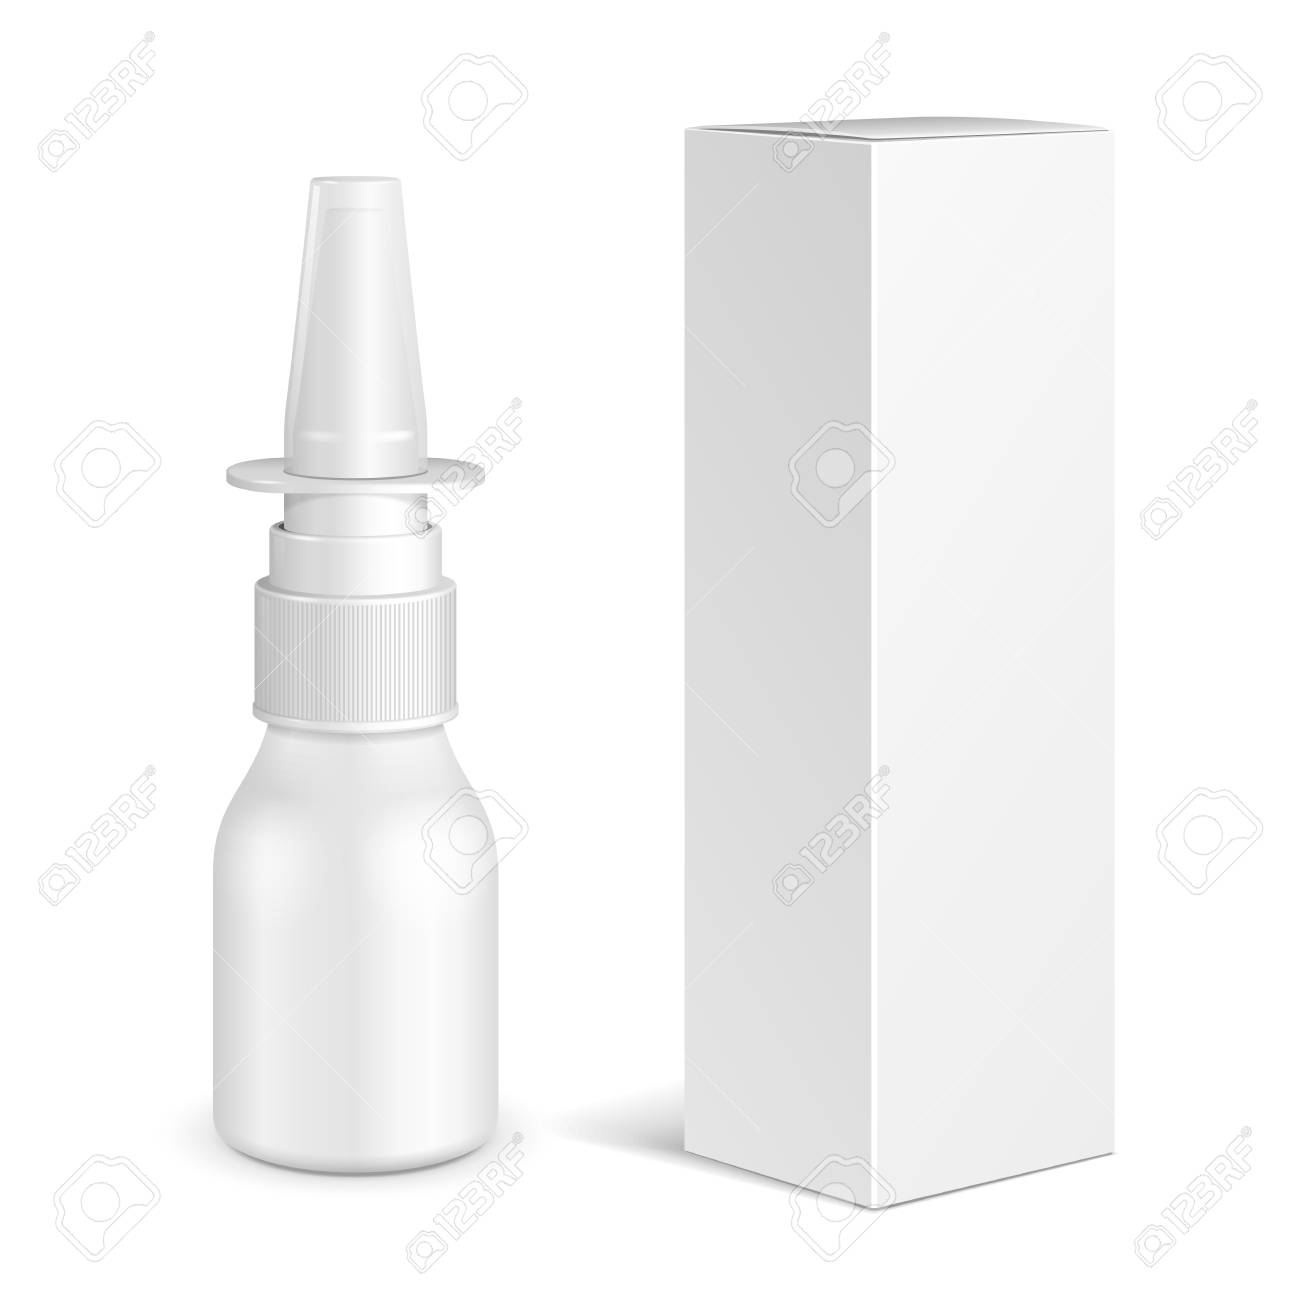 Spray Medical Nasal Antiseptic Drugs Plastic Bottle With Box. Common Cold, Allergies. Mock Up Ready For Your Design. Illustration Isolated On White Background. Vector EPS10 - 96303391